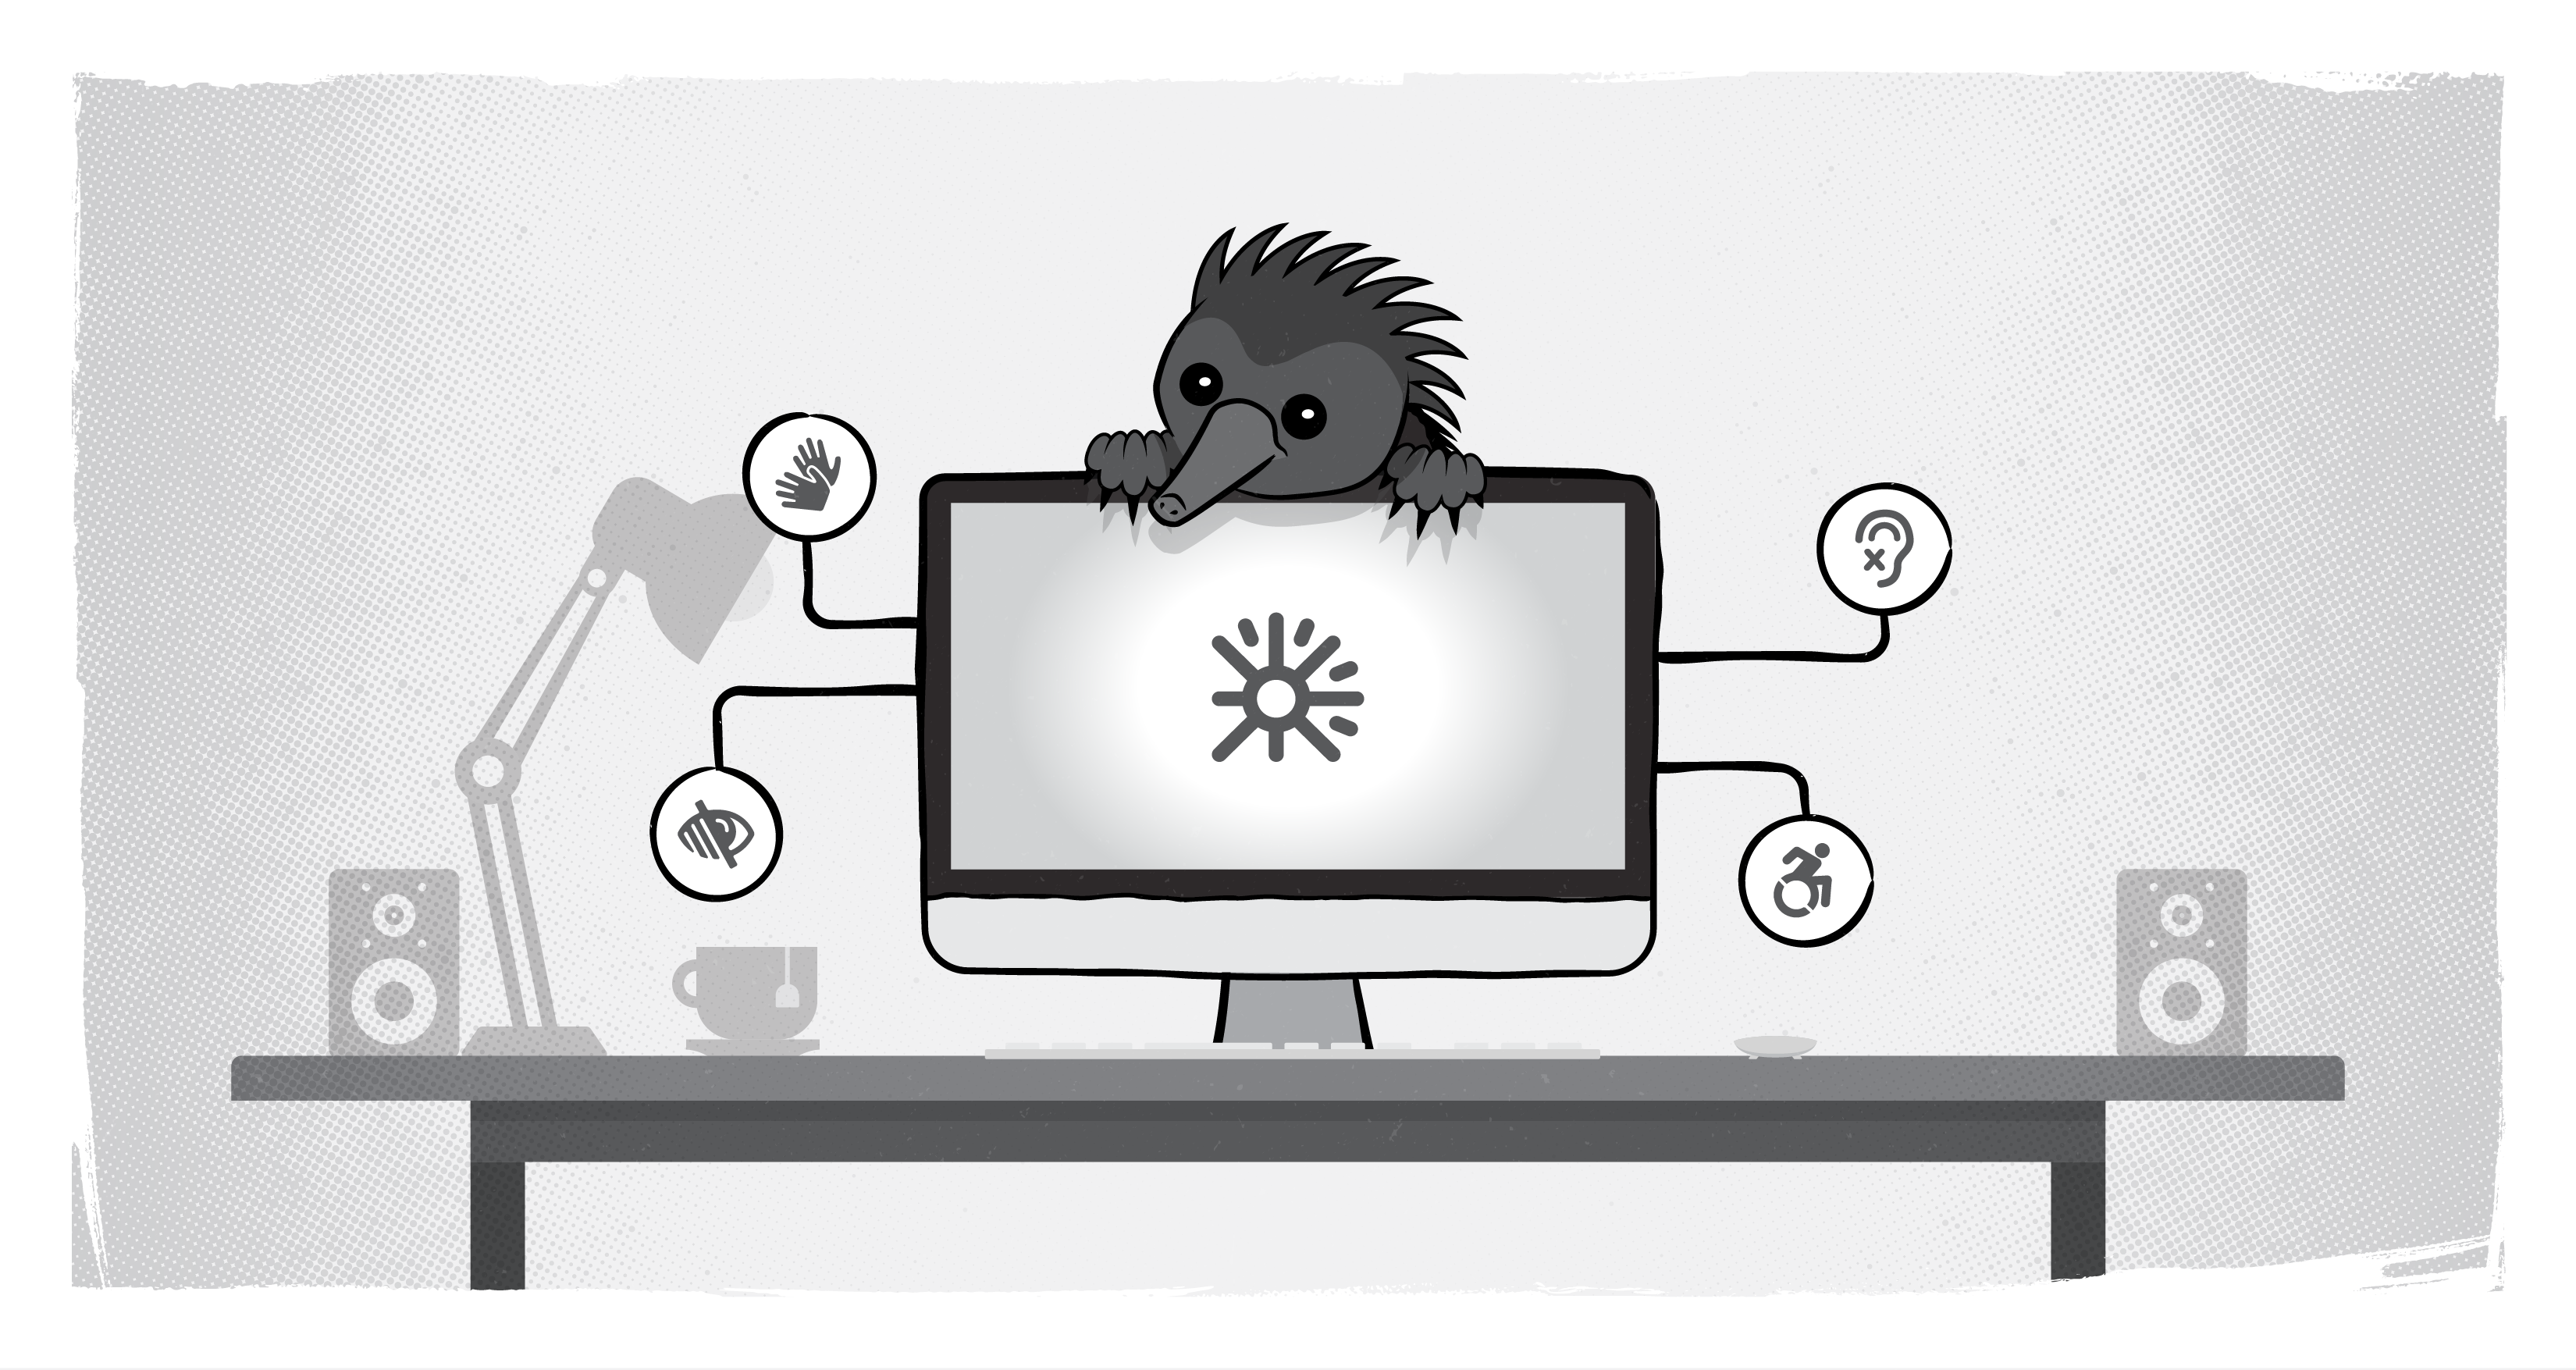 echidna perched over computer screen showing icons for deaf, low vision, etc.